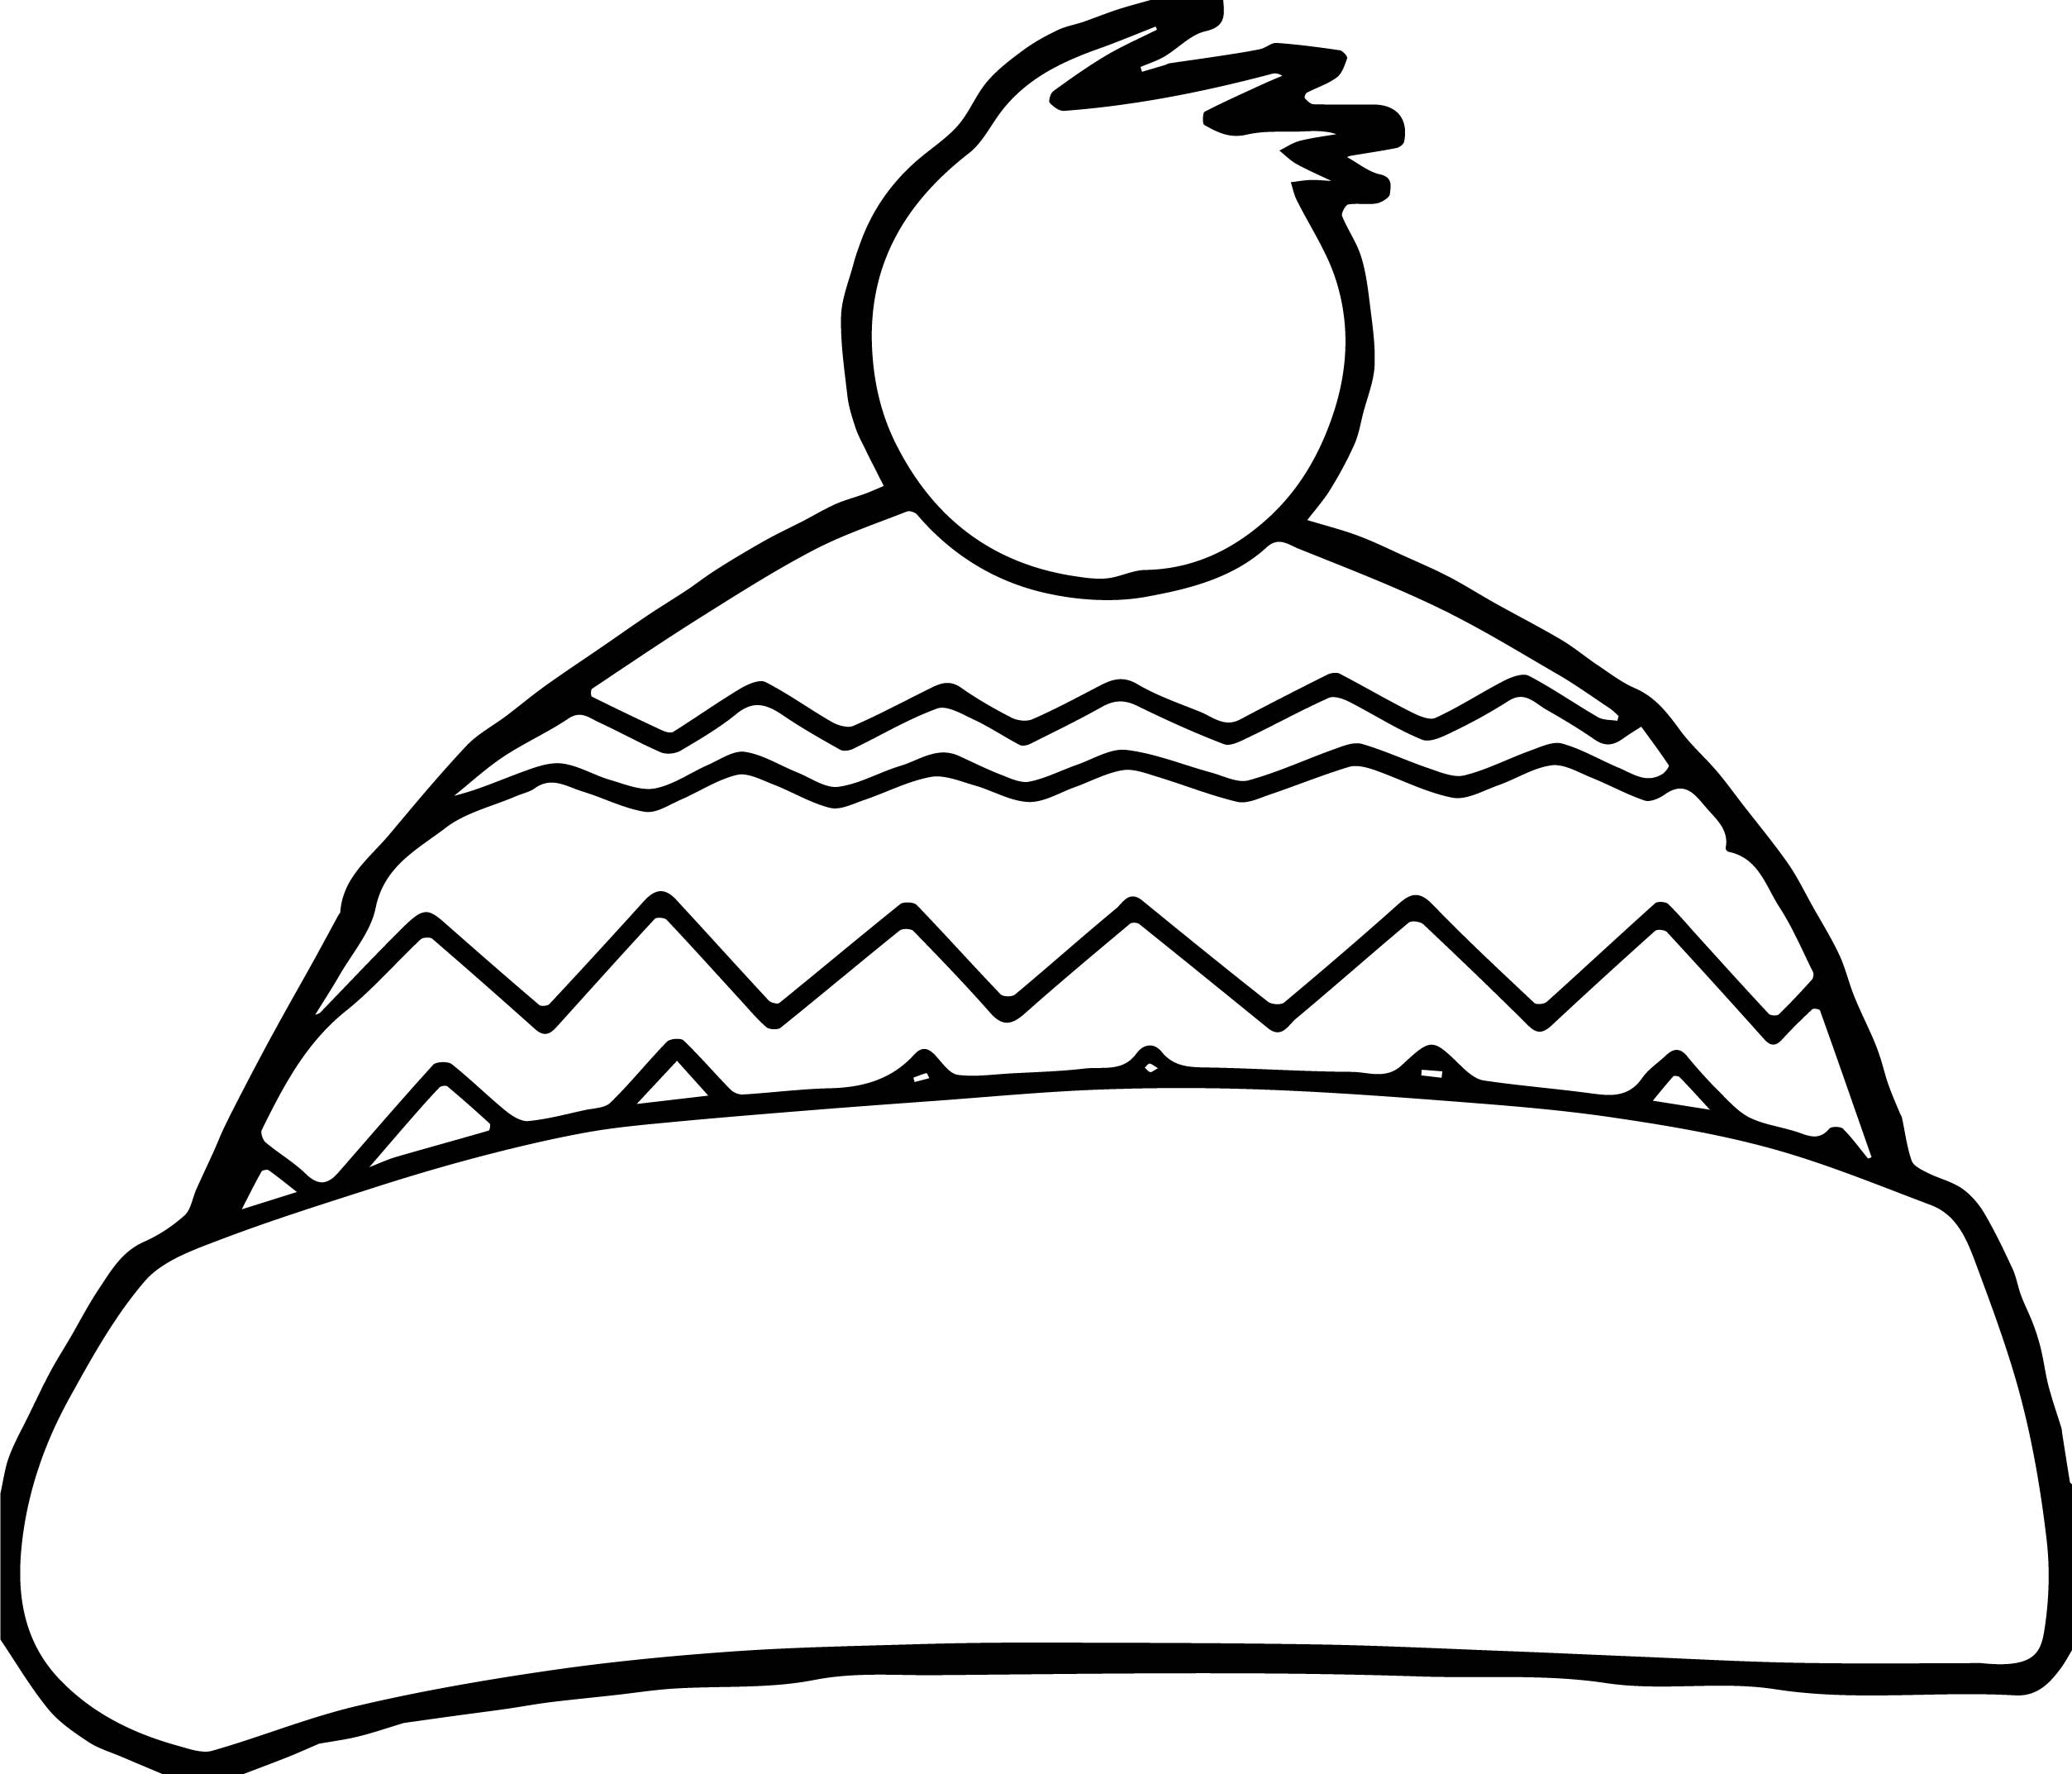 Winter Hat Coloring Page Preschool Winter Fun Pinterest Crafts Paper And Coloring Pages